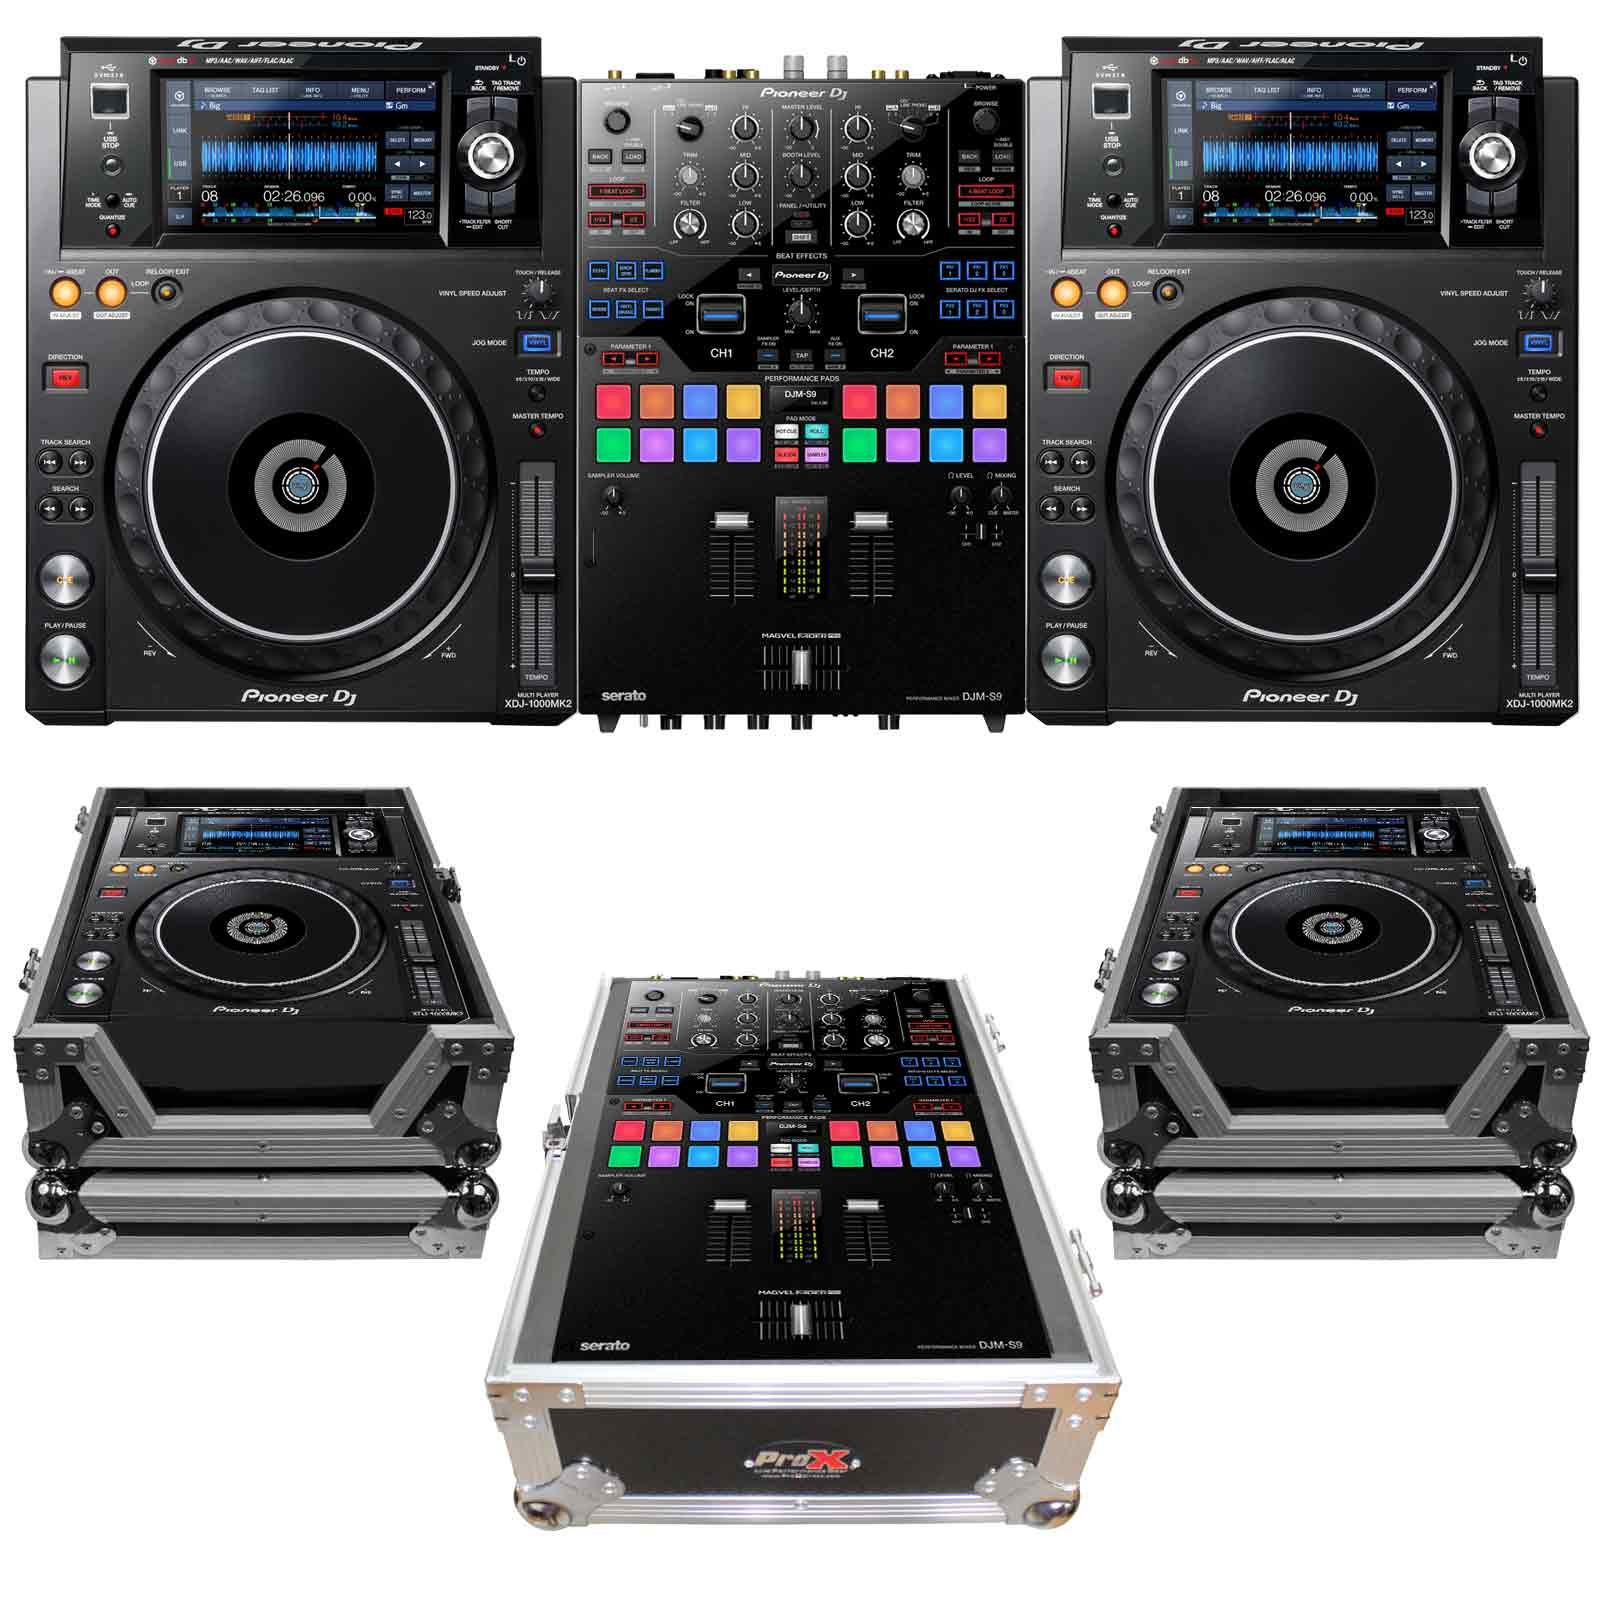 pioneer dj djm s9 xdj 1000mk2 package. Black Bedroom Furniture Sets. Home Design Ideas